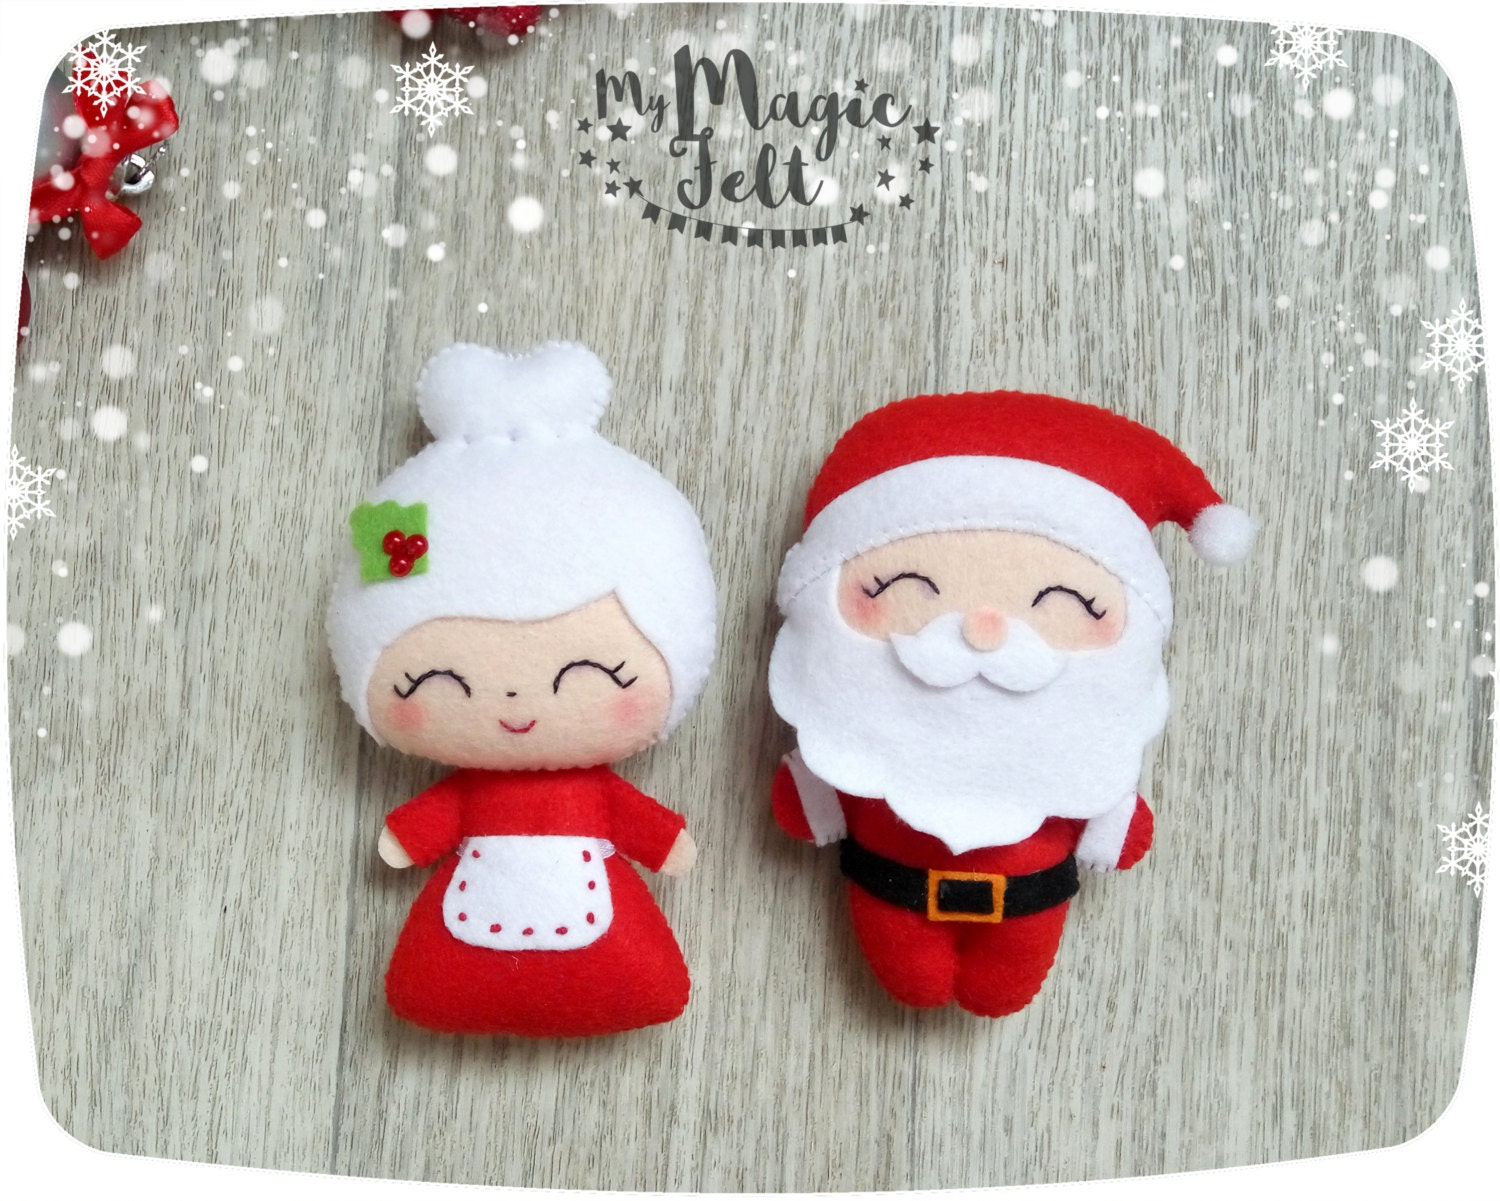 christmas amazon claus blow decorations inflatable santa luggage decoration bags up decor yard ca dp foot